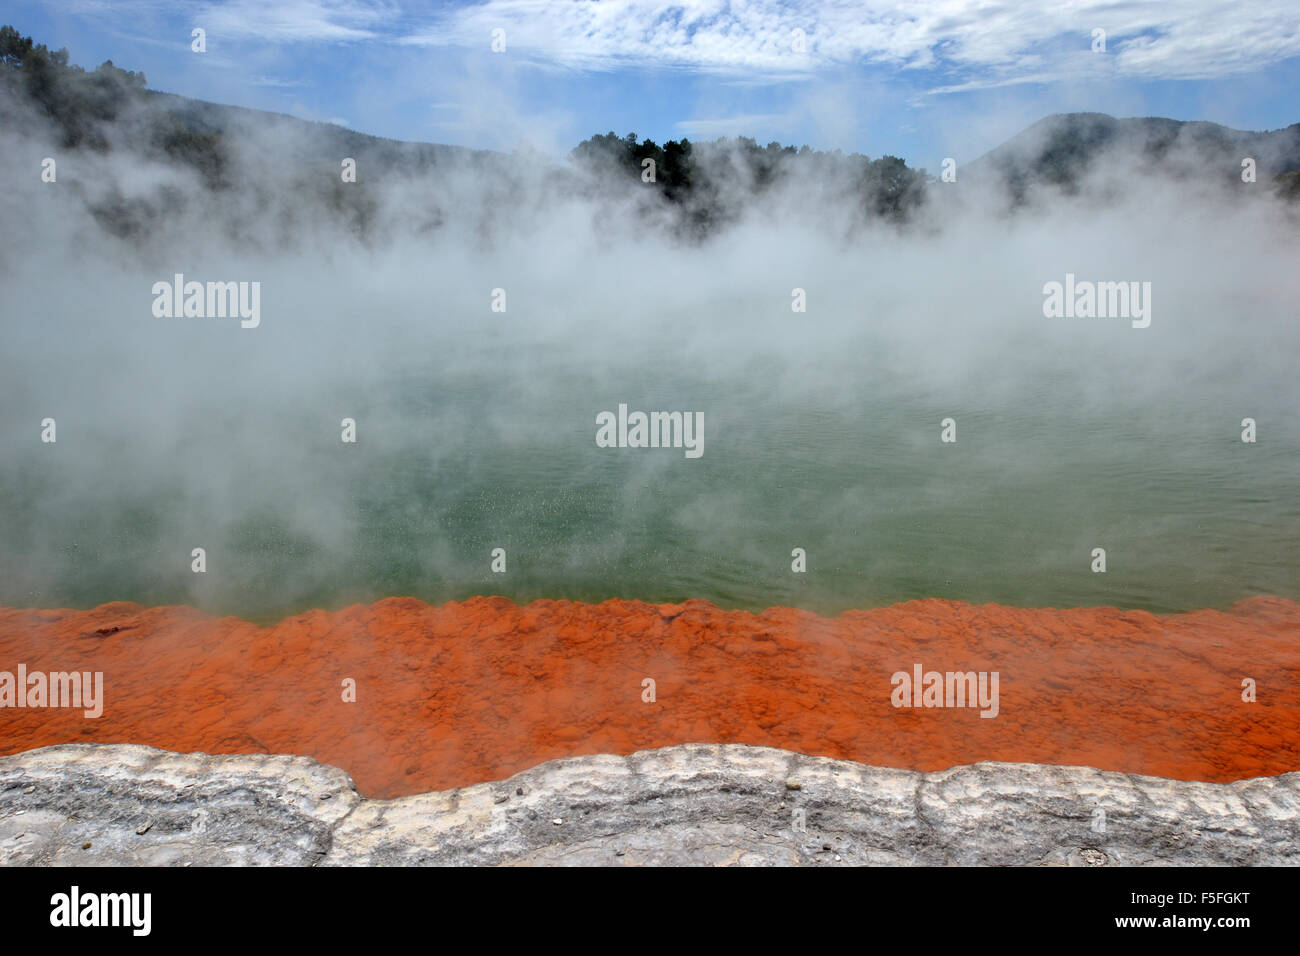 Champagne pool, Waiotapu Thermal Wonderland, Rotorua, North Island, New Zealand - Stock Image